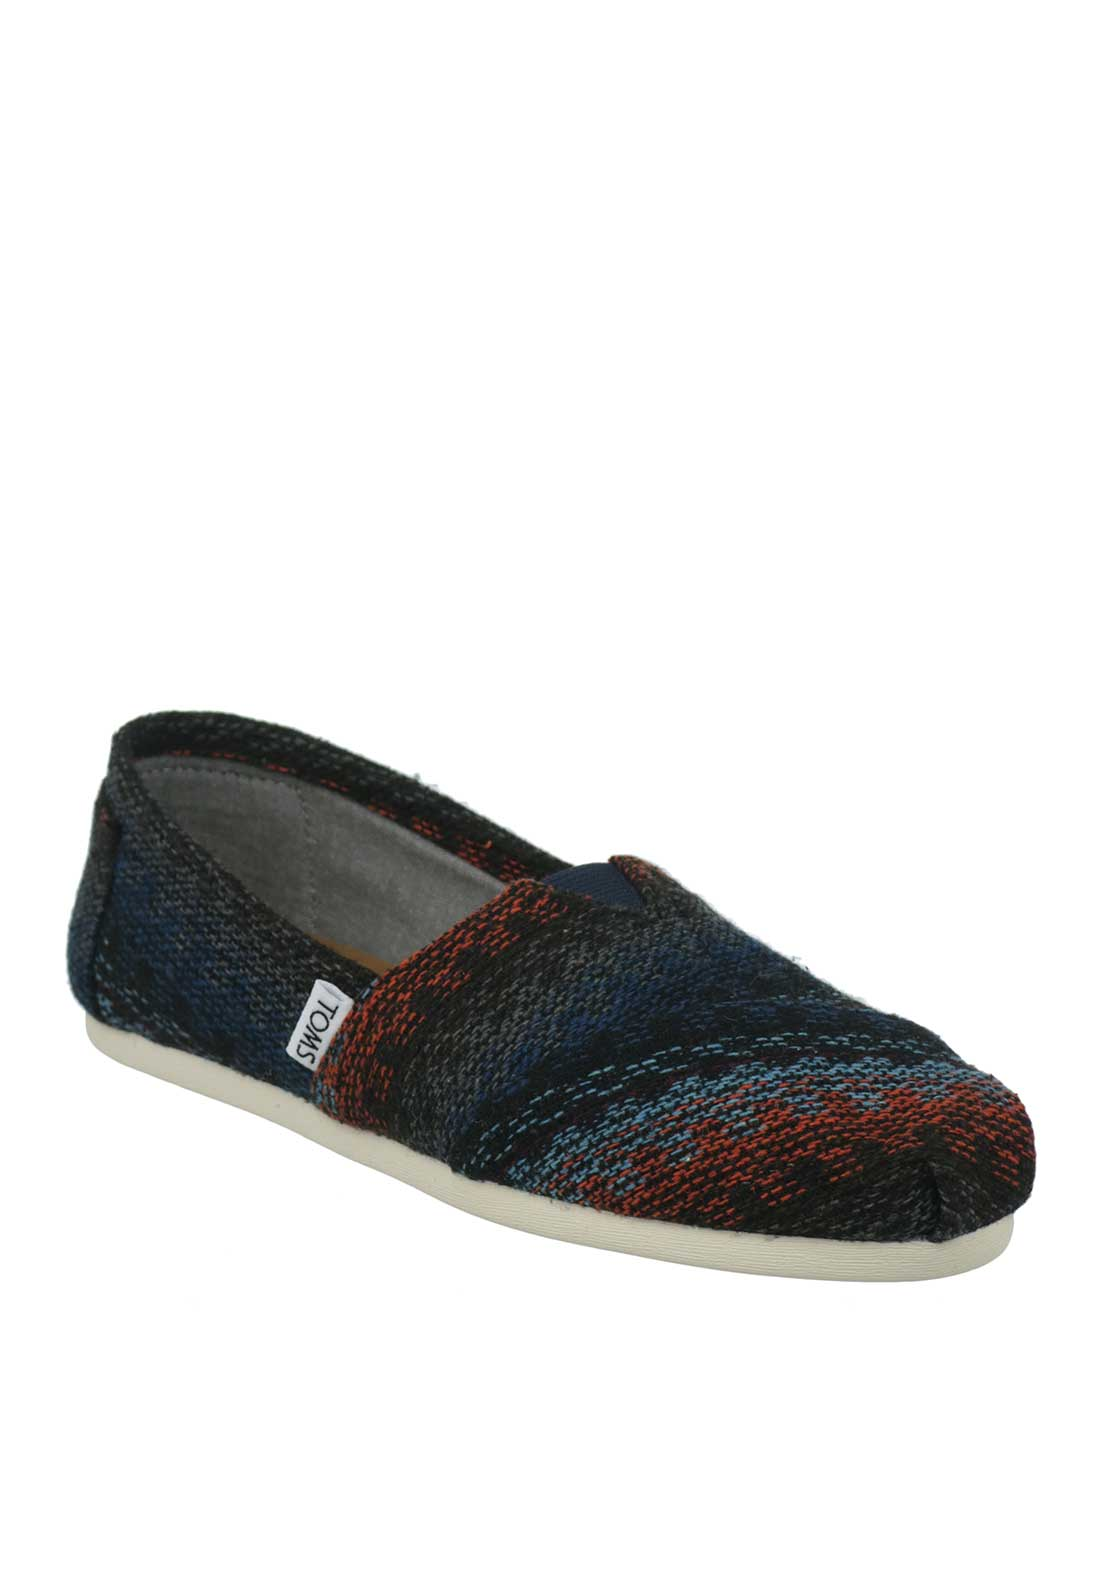 TOMS Womens Classic Knit Shoes, Multi-Coloured